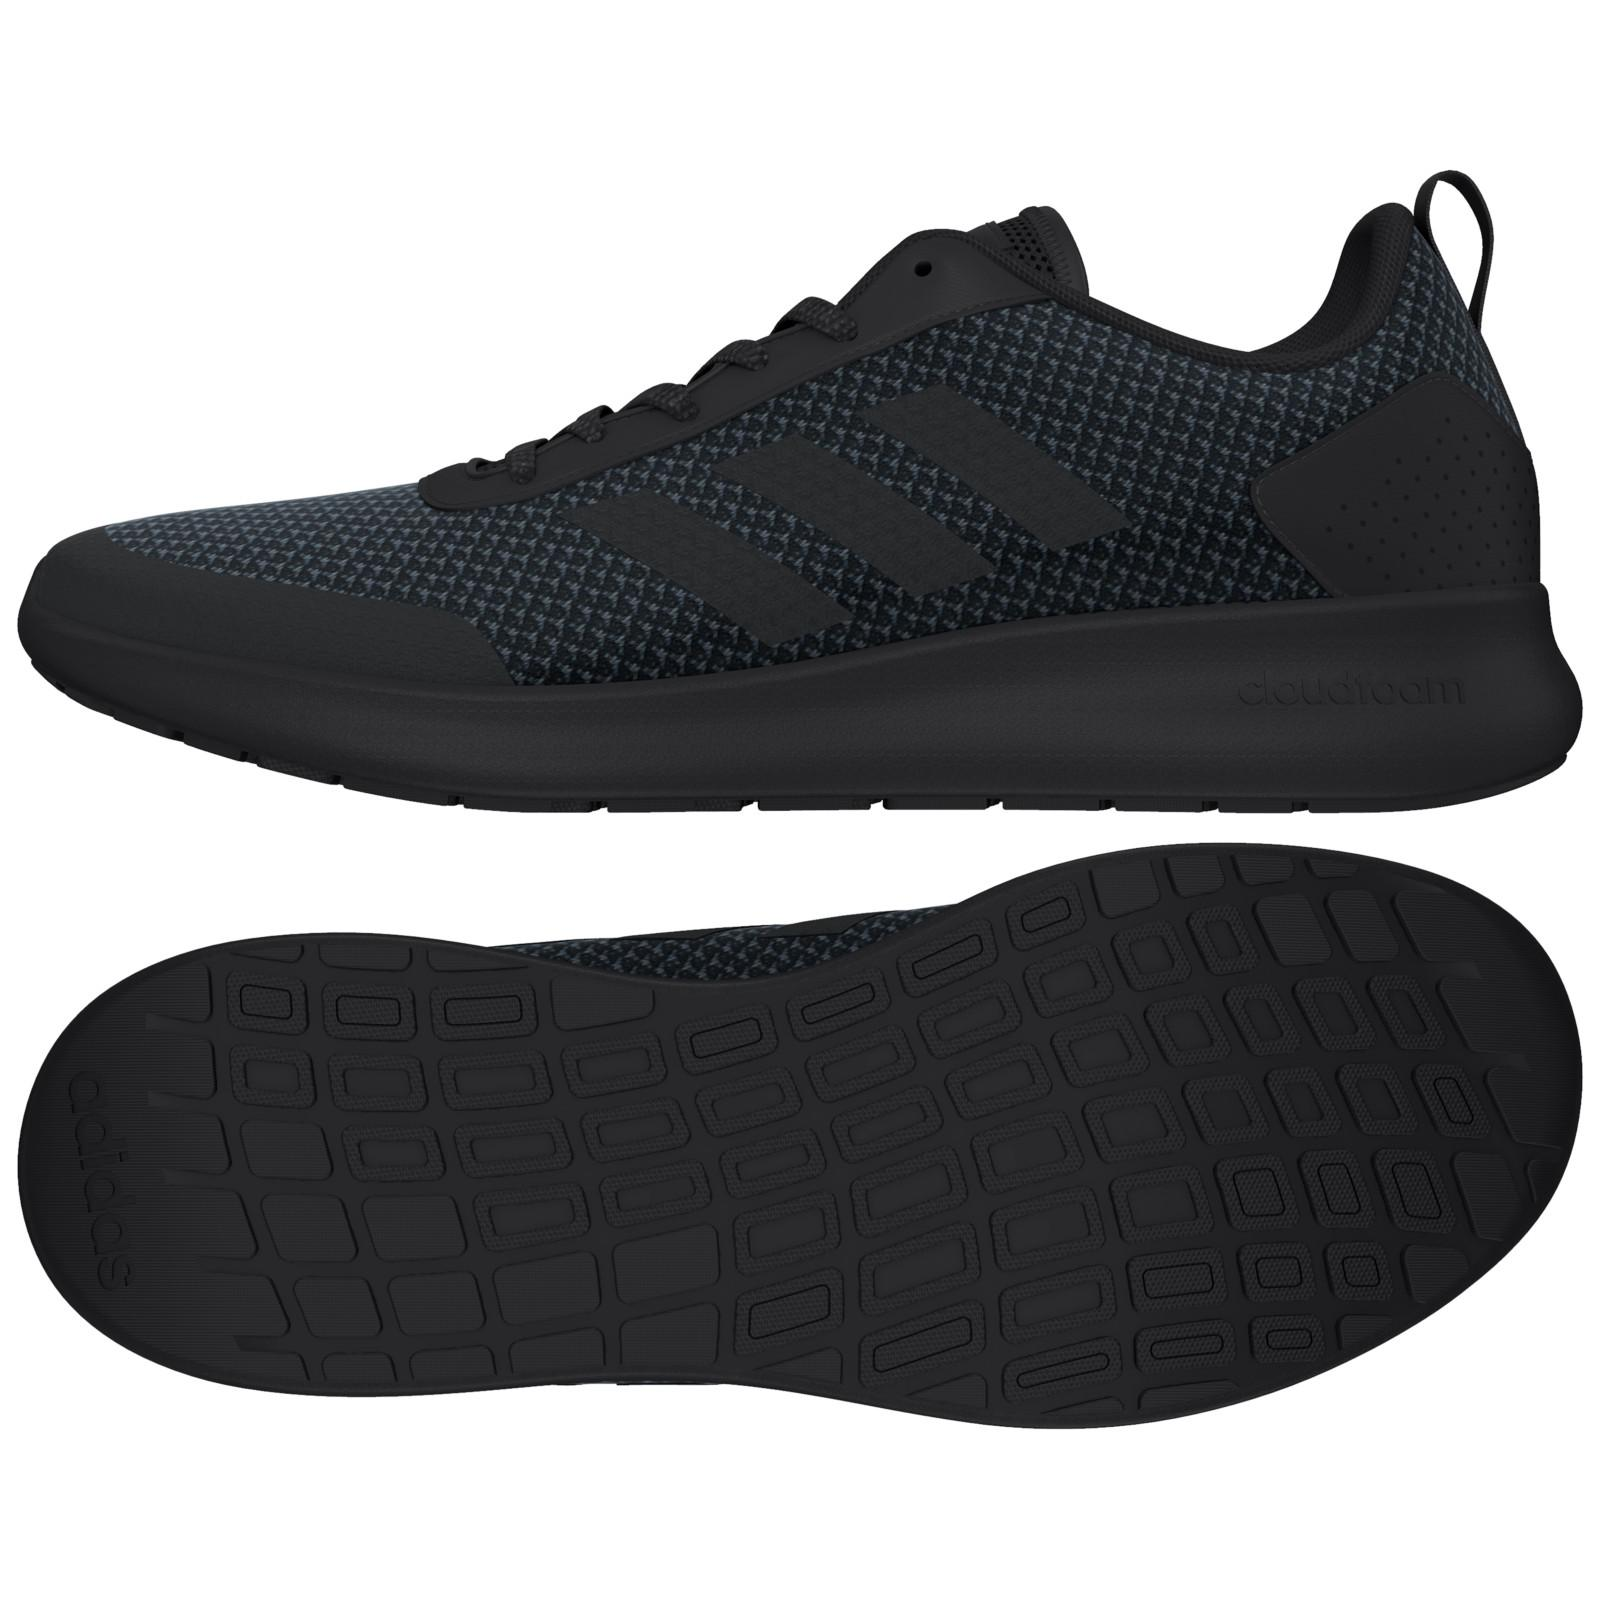 ... best price adidas cloudfoam element race running shoes in black for men  lyst c2c6f d1fd9 851dae697